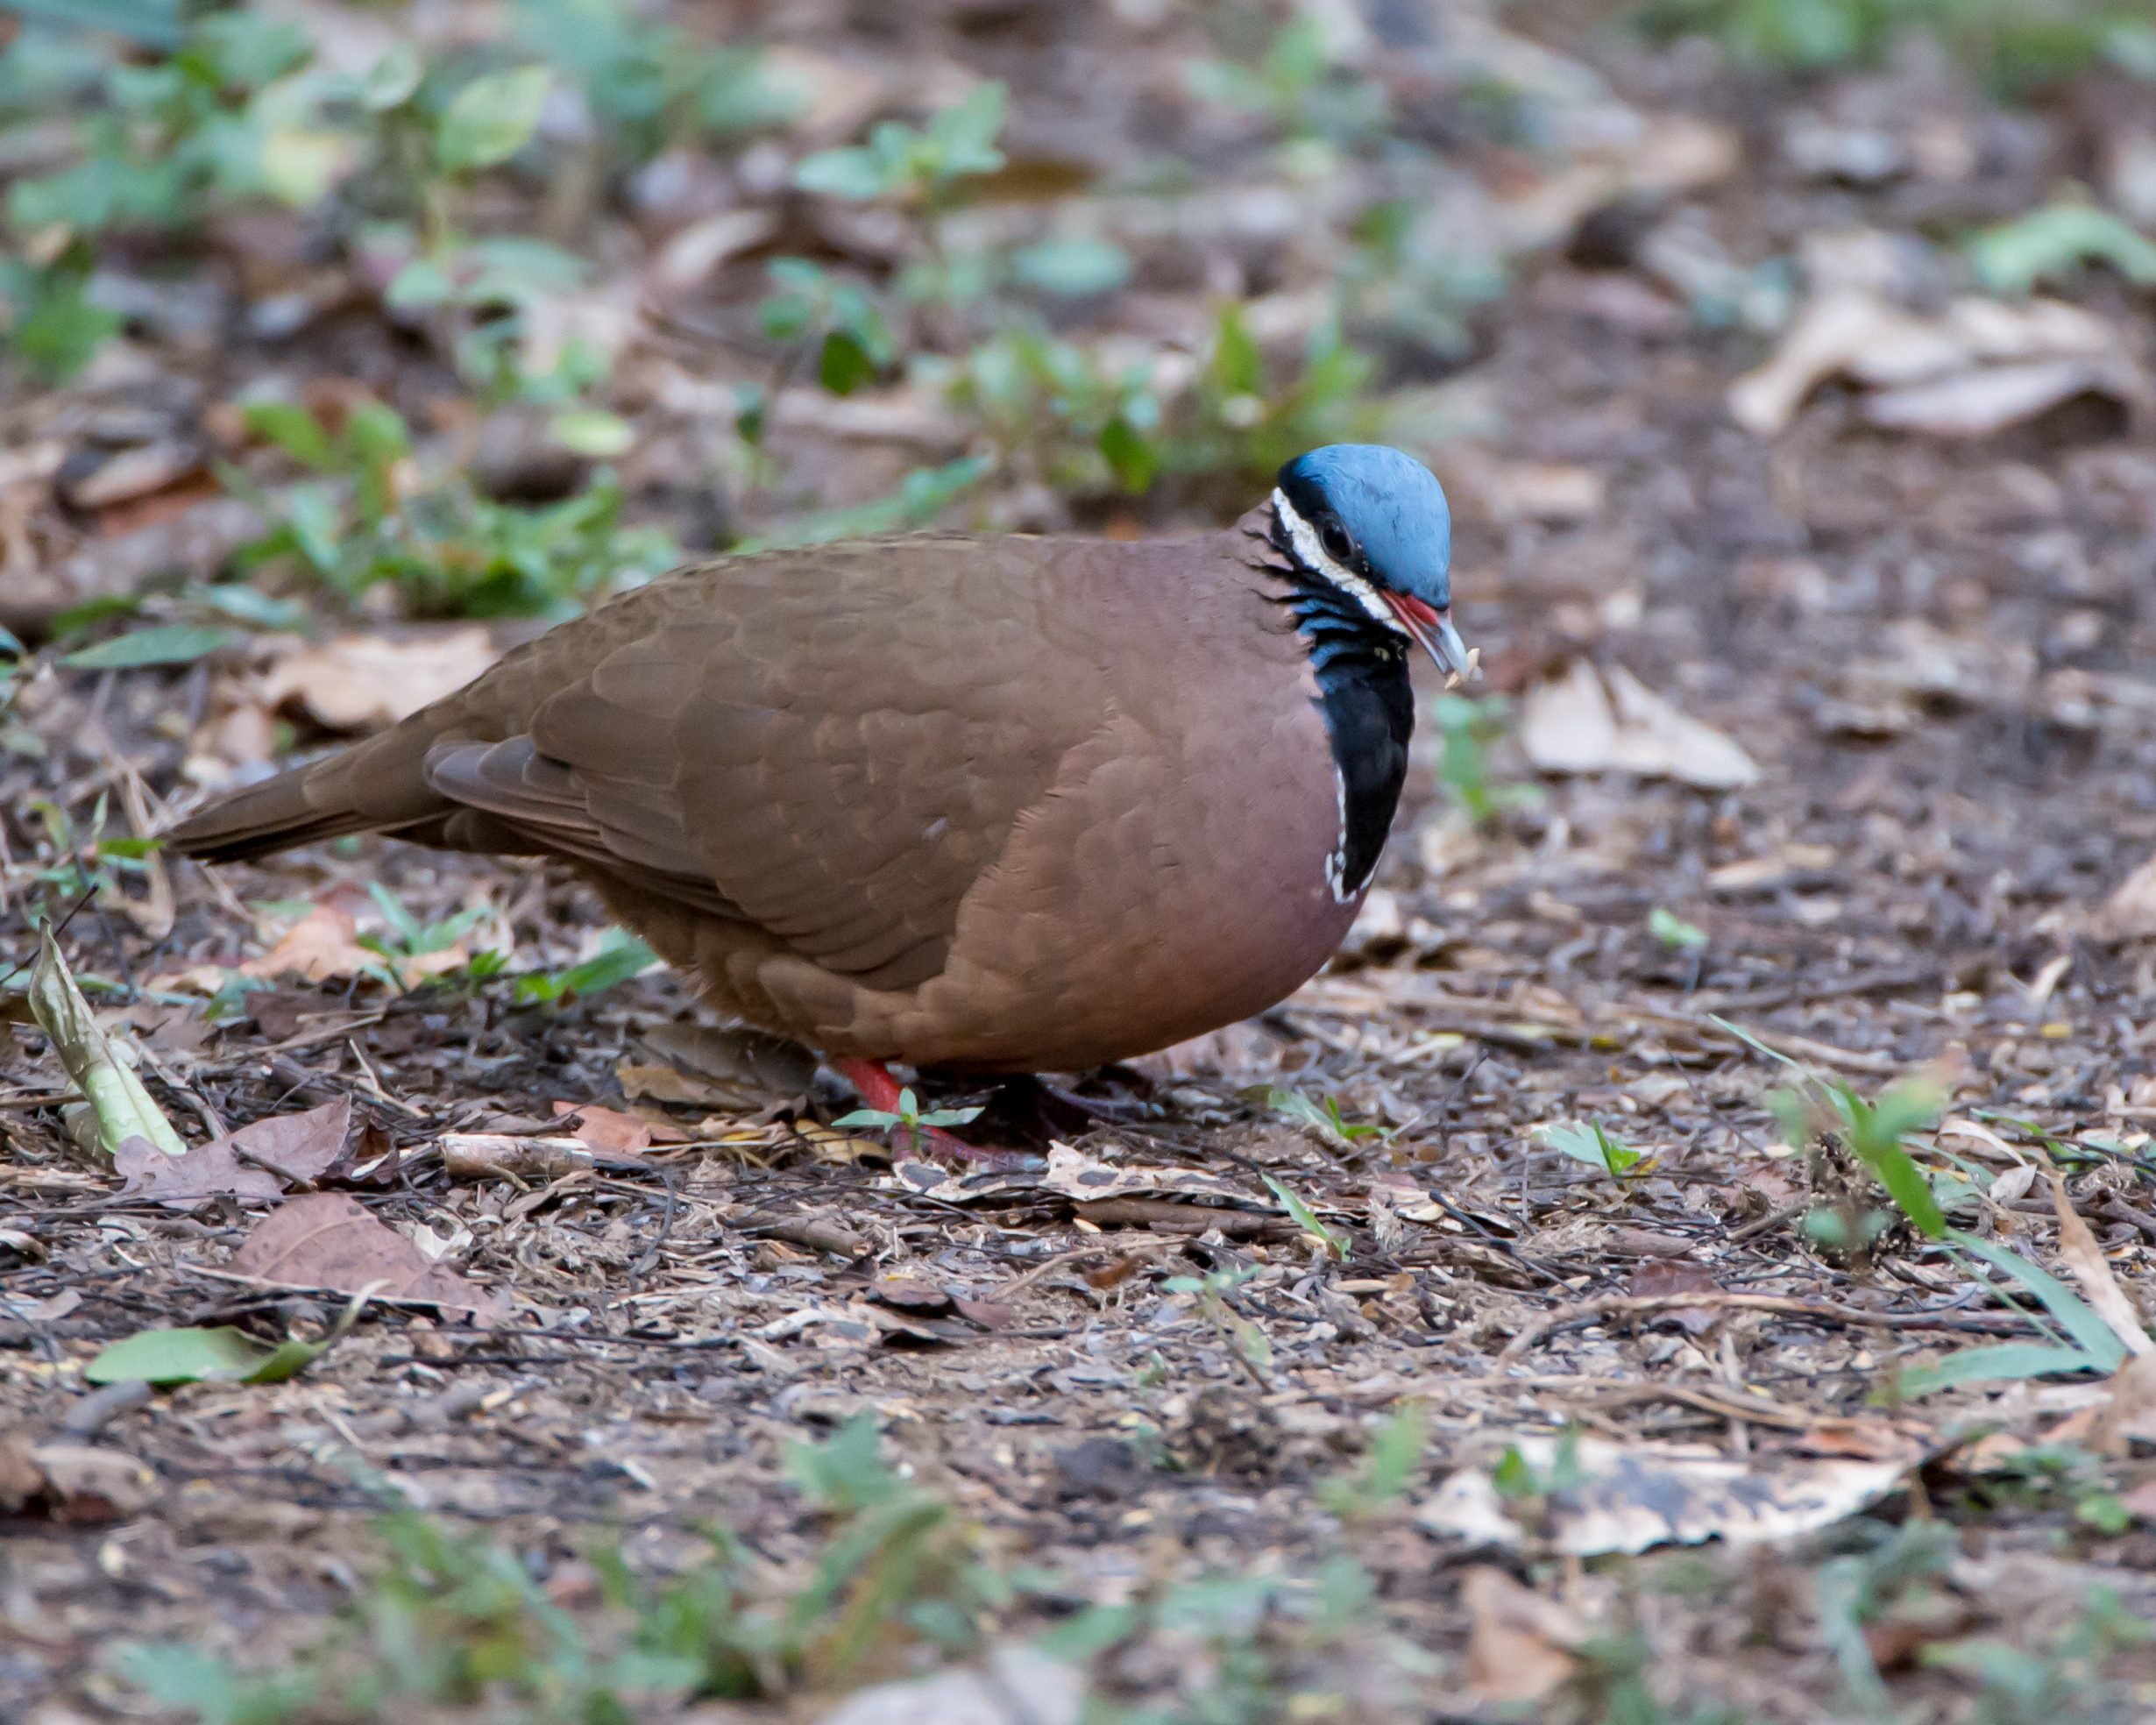 The Blue-headed Quail-dove is an endangered species that only lives in Cuba.